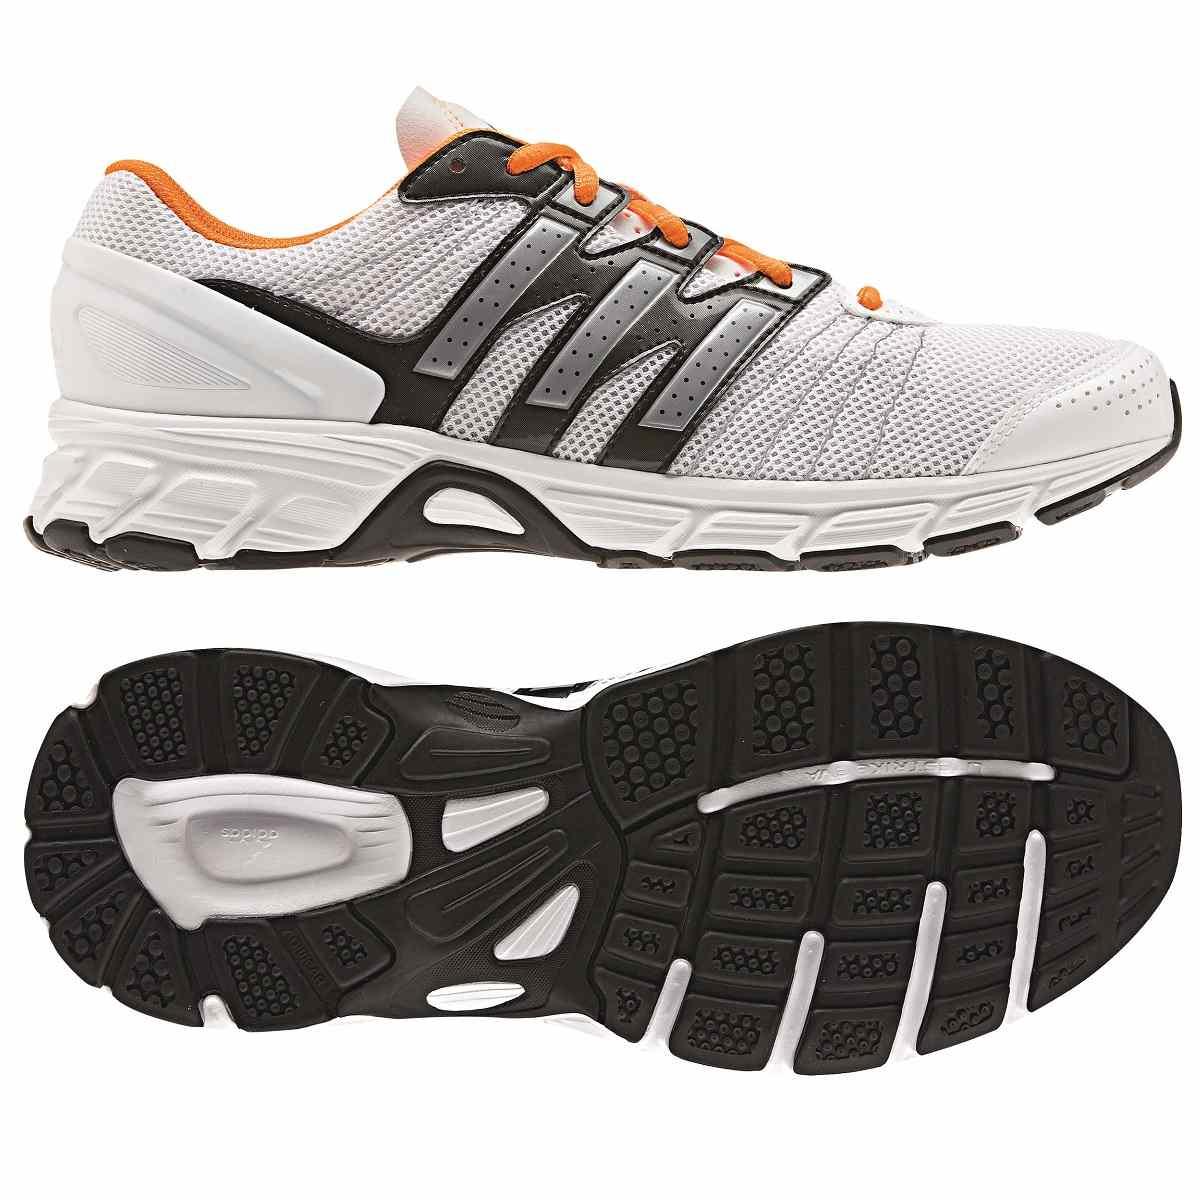 adidas roadmace m laufschuhe joggingschuhe sportschuhe herren diverse farben ebay. Black Bedroom Furniture Sets. Home Design Ideas